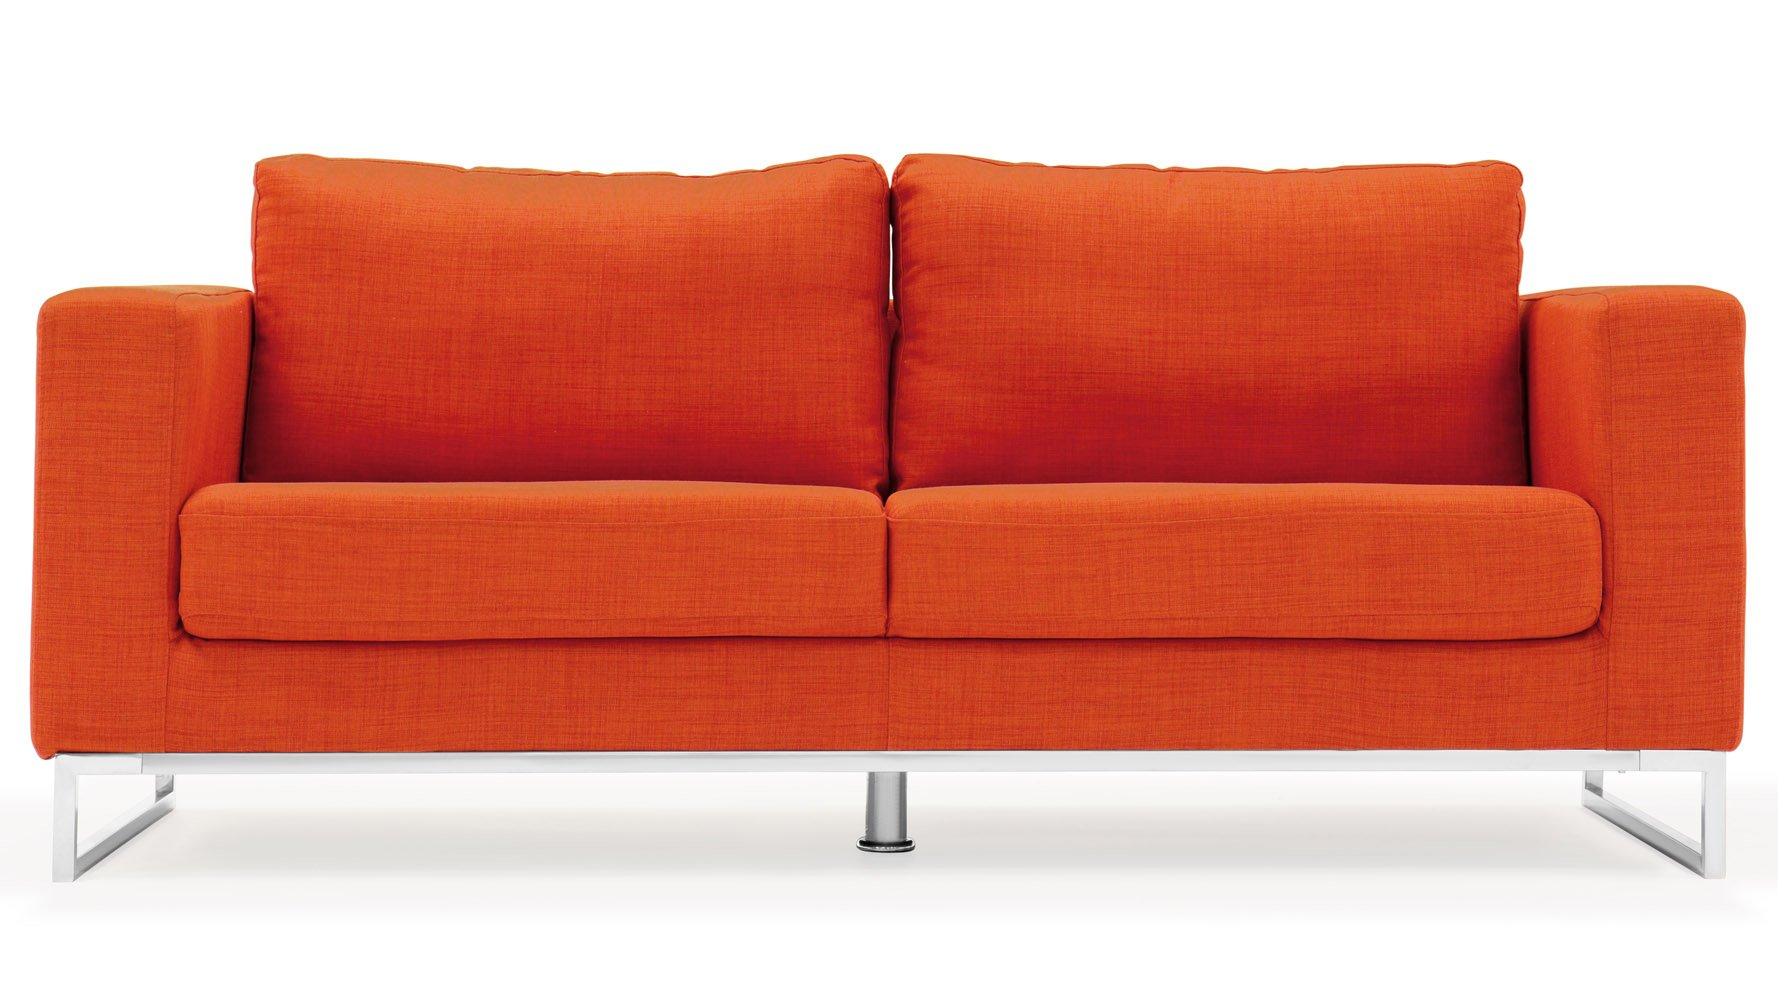 Modern Orange Fabric Upholstered 2 Piece Sofa Set with Stainless ...